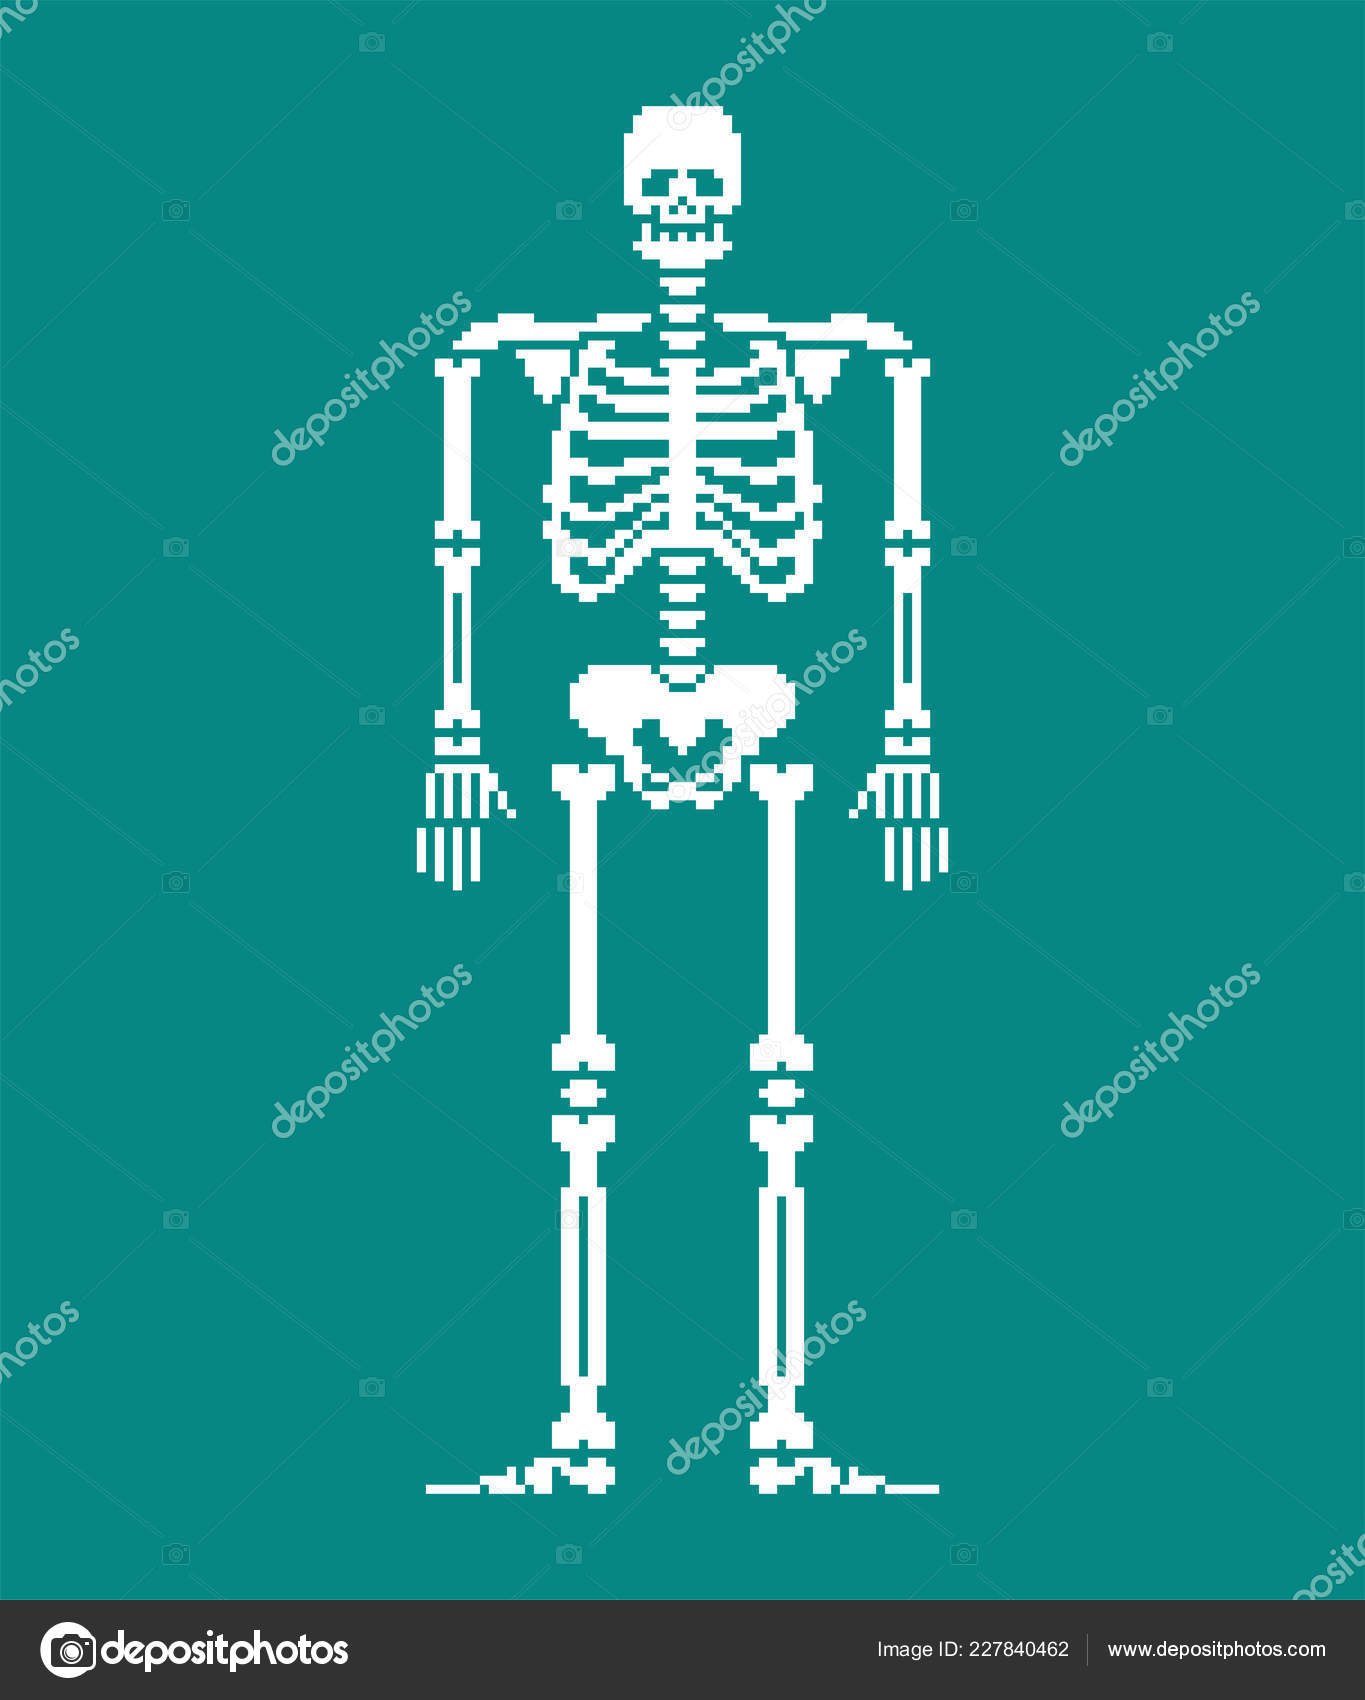 hight resolution of skull and bones anatomy 8 bit pixelate pelvic bone and ribs spine and vertebrae human bone system 16bit old game computer graphics style vector by